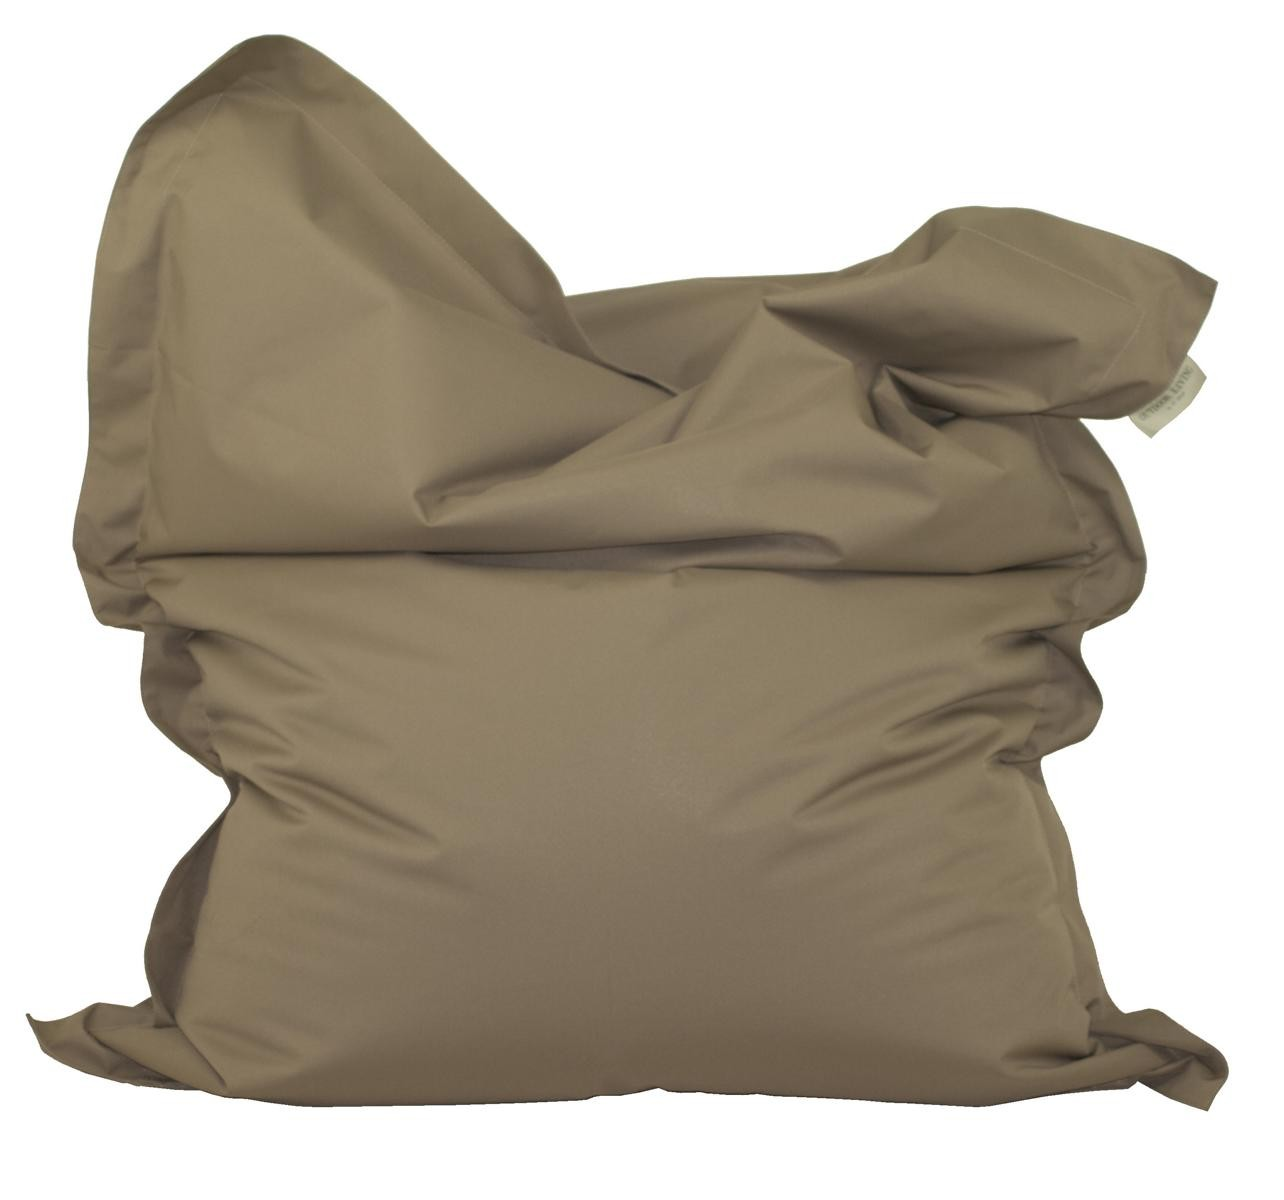 outdoor sitzsack xxl mod outdoorsittingbagmiami beige h c m bel. Black Bedroom Furniture Sets. Home Design Ideas